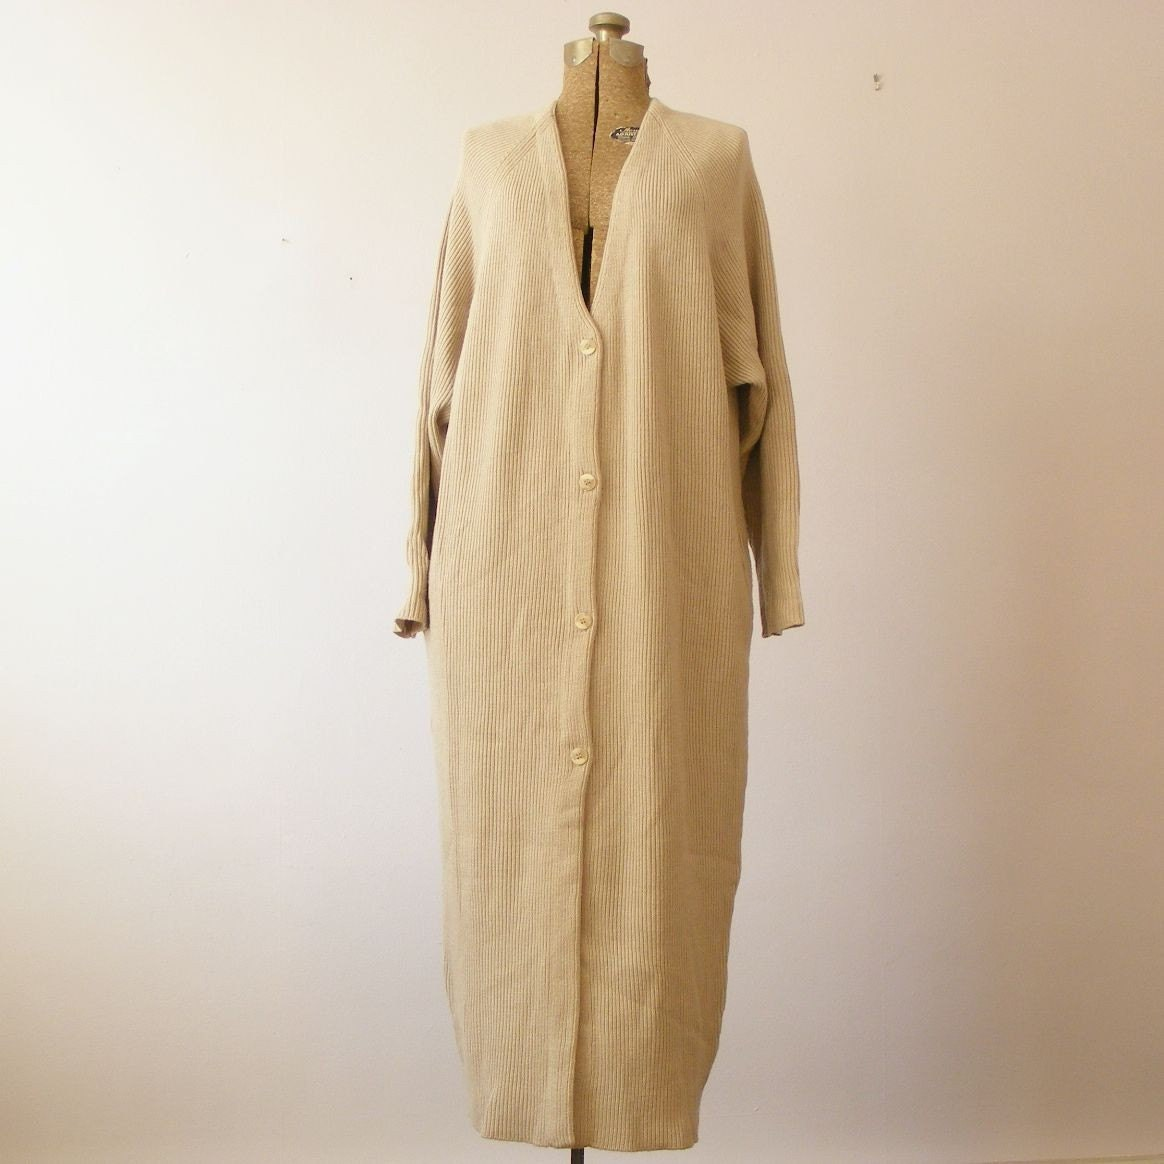 Sale Vintage Floor Length Fawn Ungaro Cardigan Dress Large